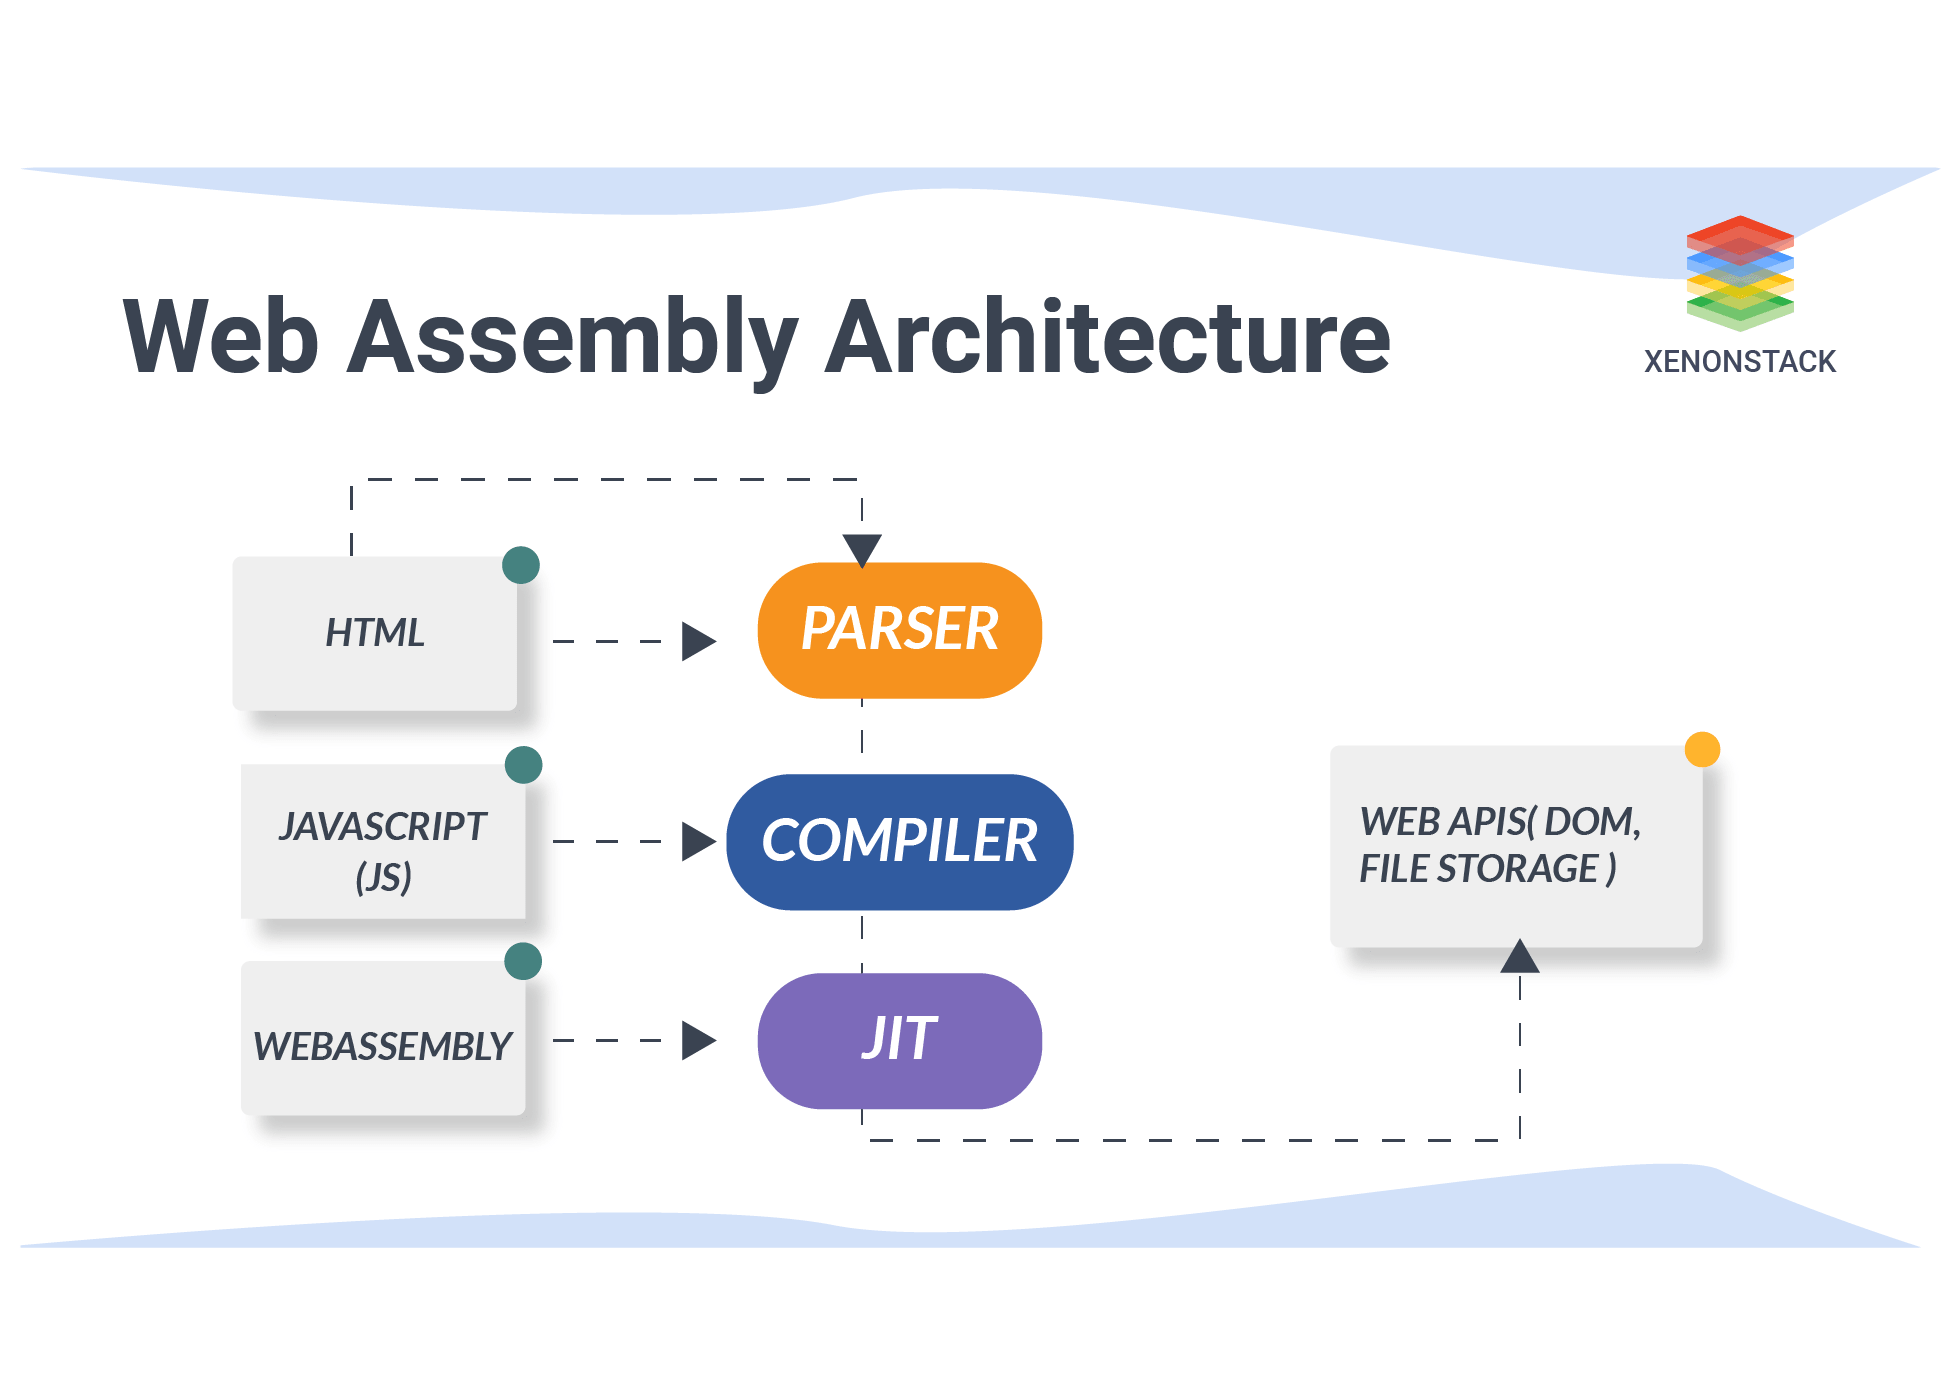 Web Assembly Architecture